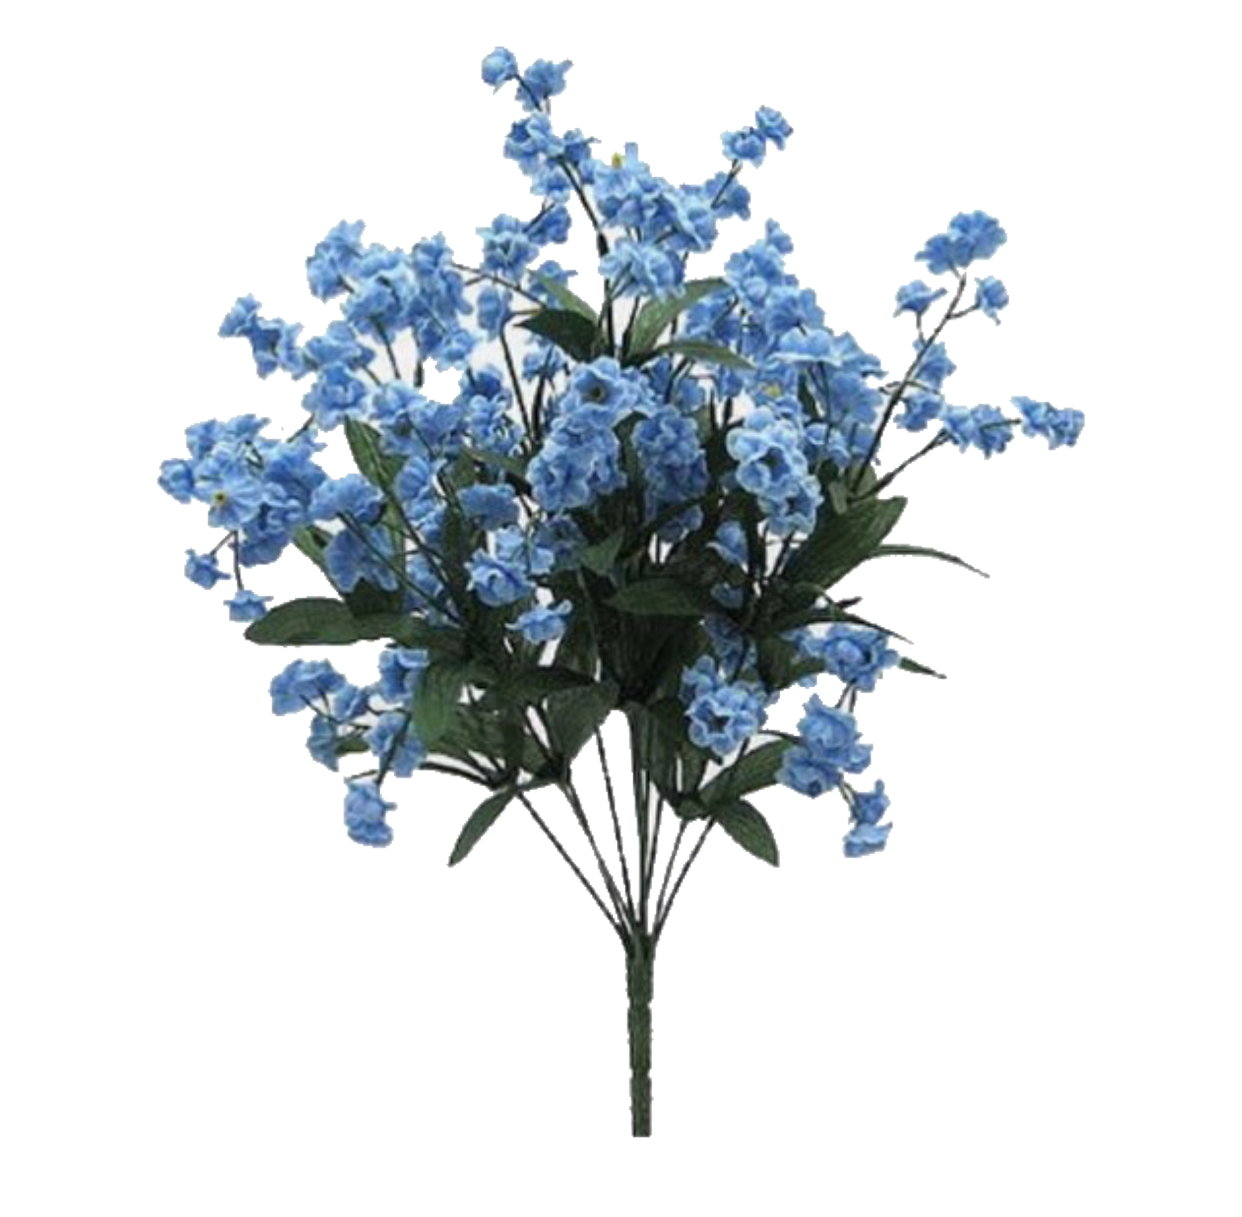 Pin by annika esselstrom on pngs Flowers, Blue aesthetic